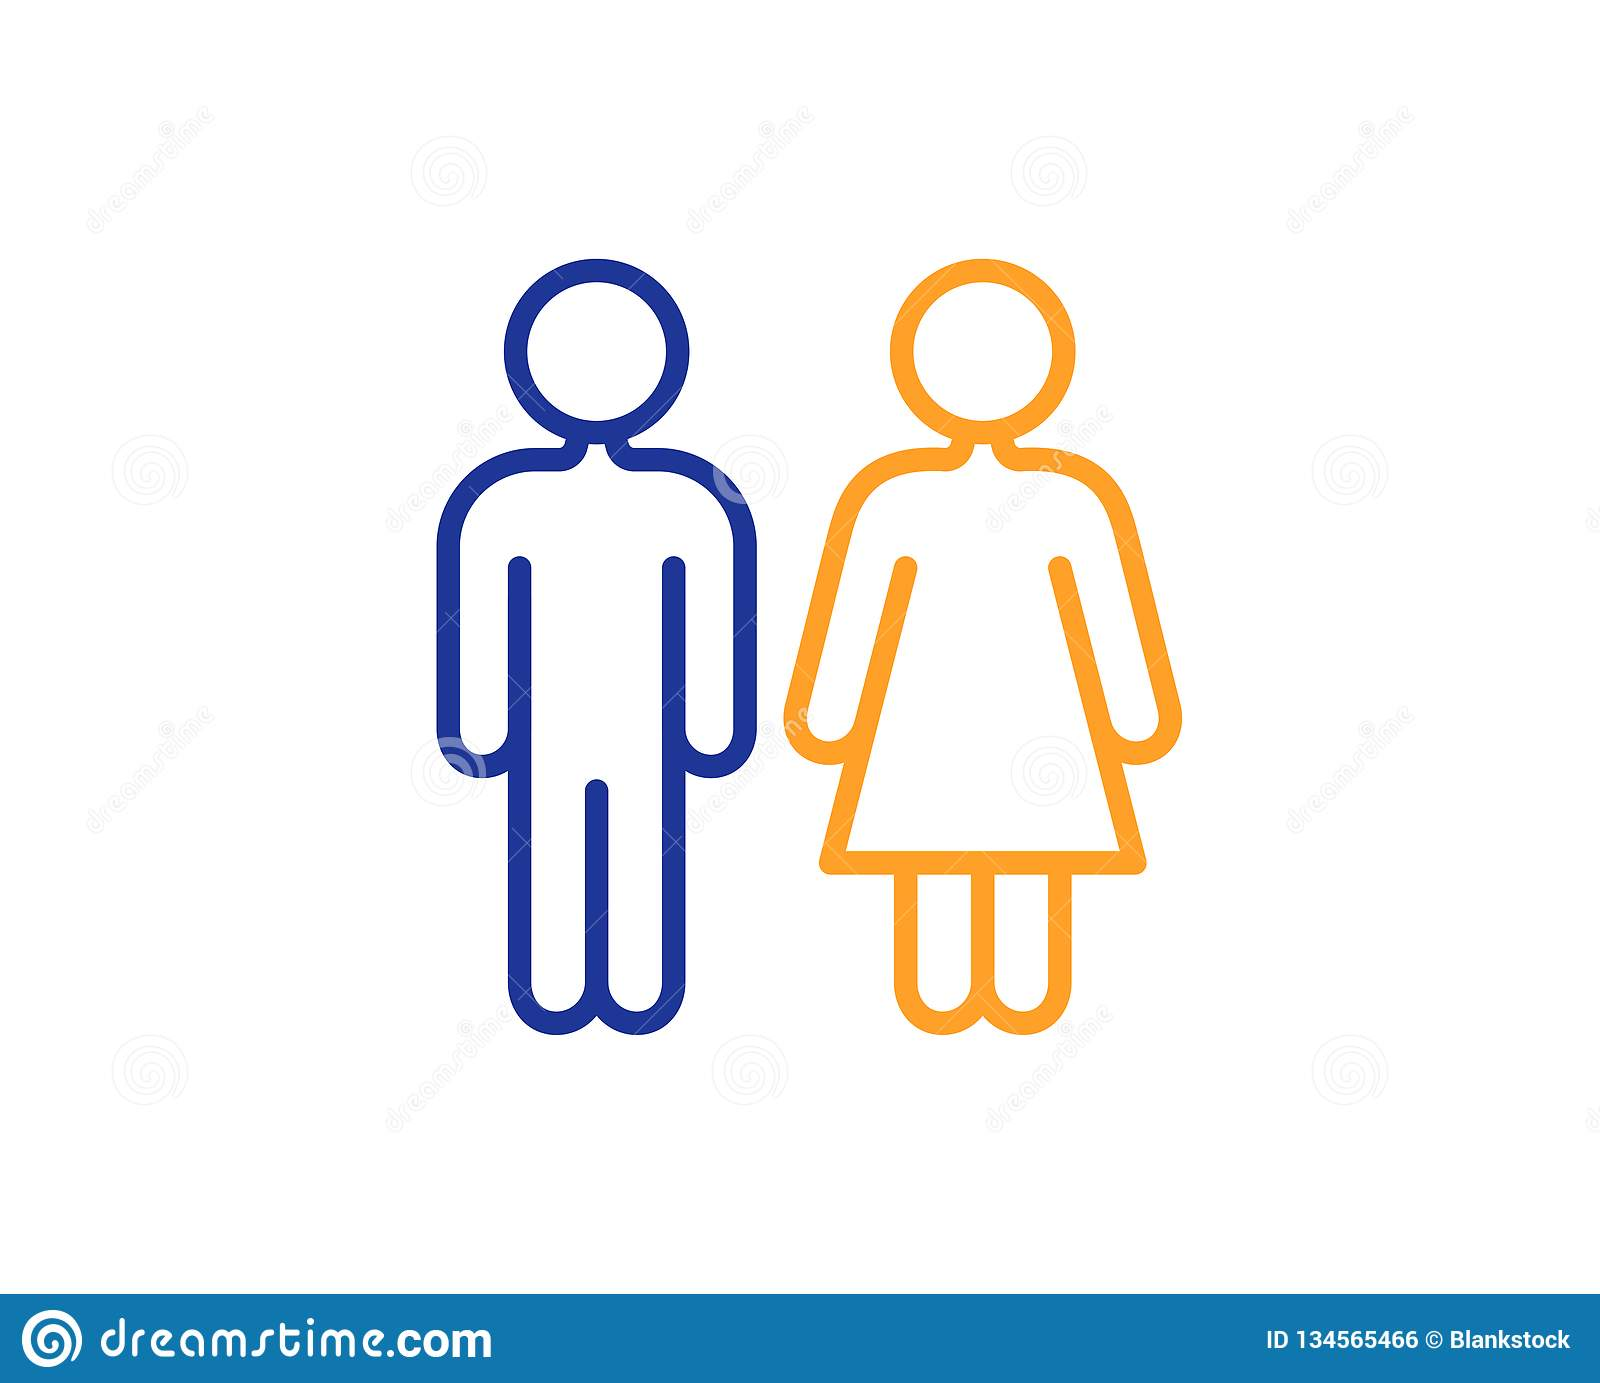 restroom line icon wc toilet sign vector stock vector illustration of isolated outline 134565466 https www dreamstime com restroom line icon wc toilet sign vector public lavatory symbol colorful outline concept blue orange thin color image134565466